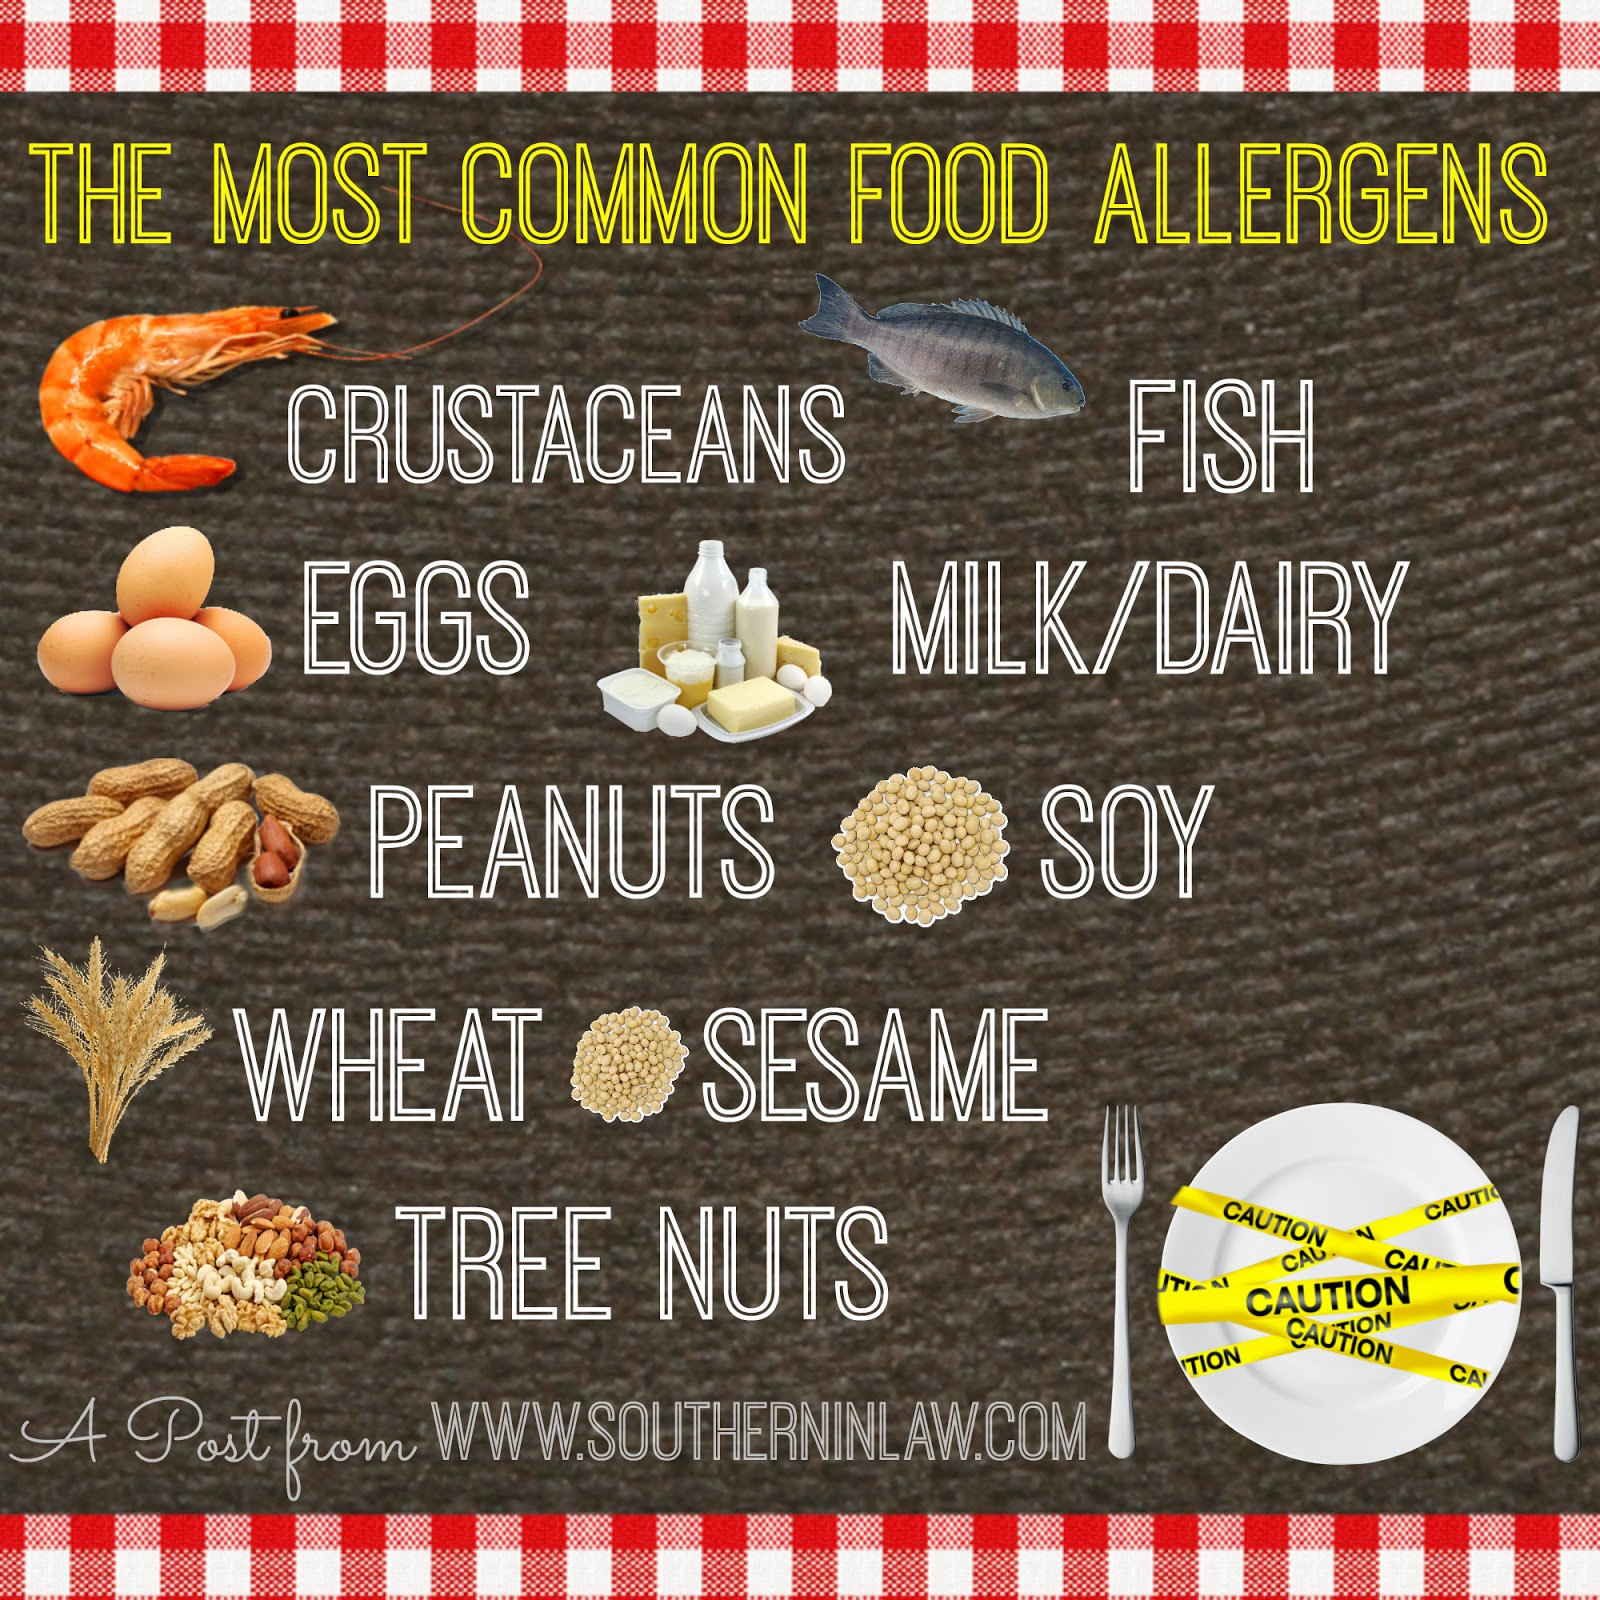 The most common food allergies and allergens - The difference between food allergies and intolerances